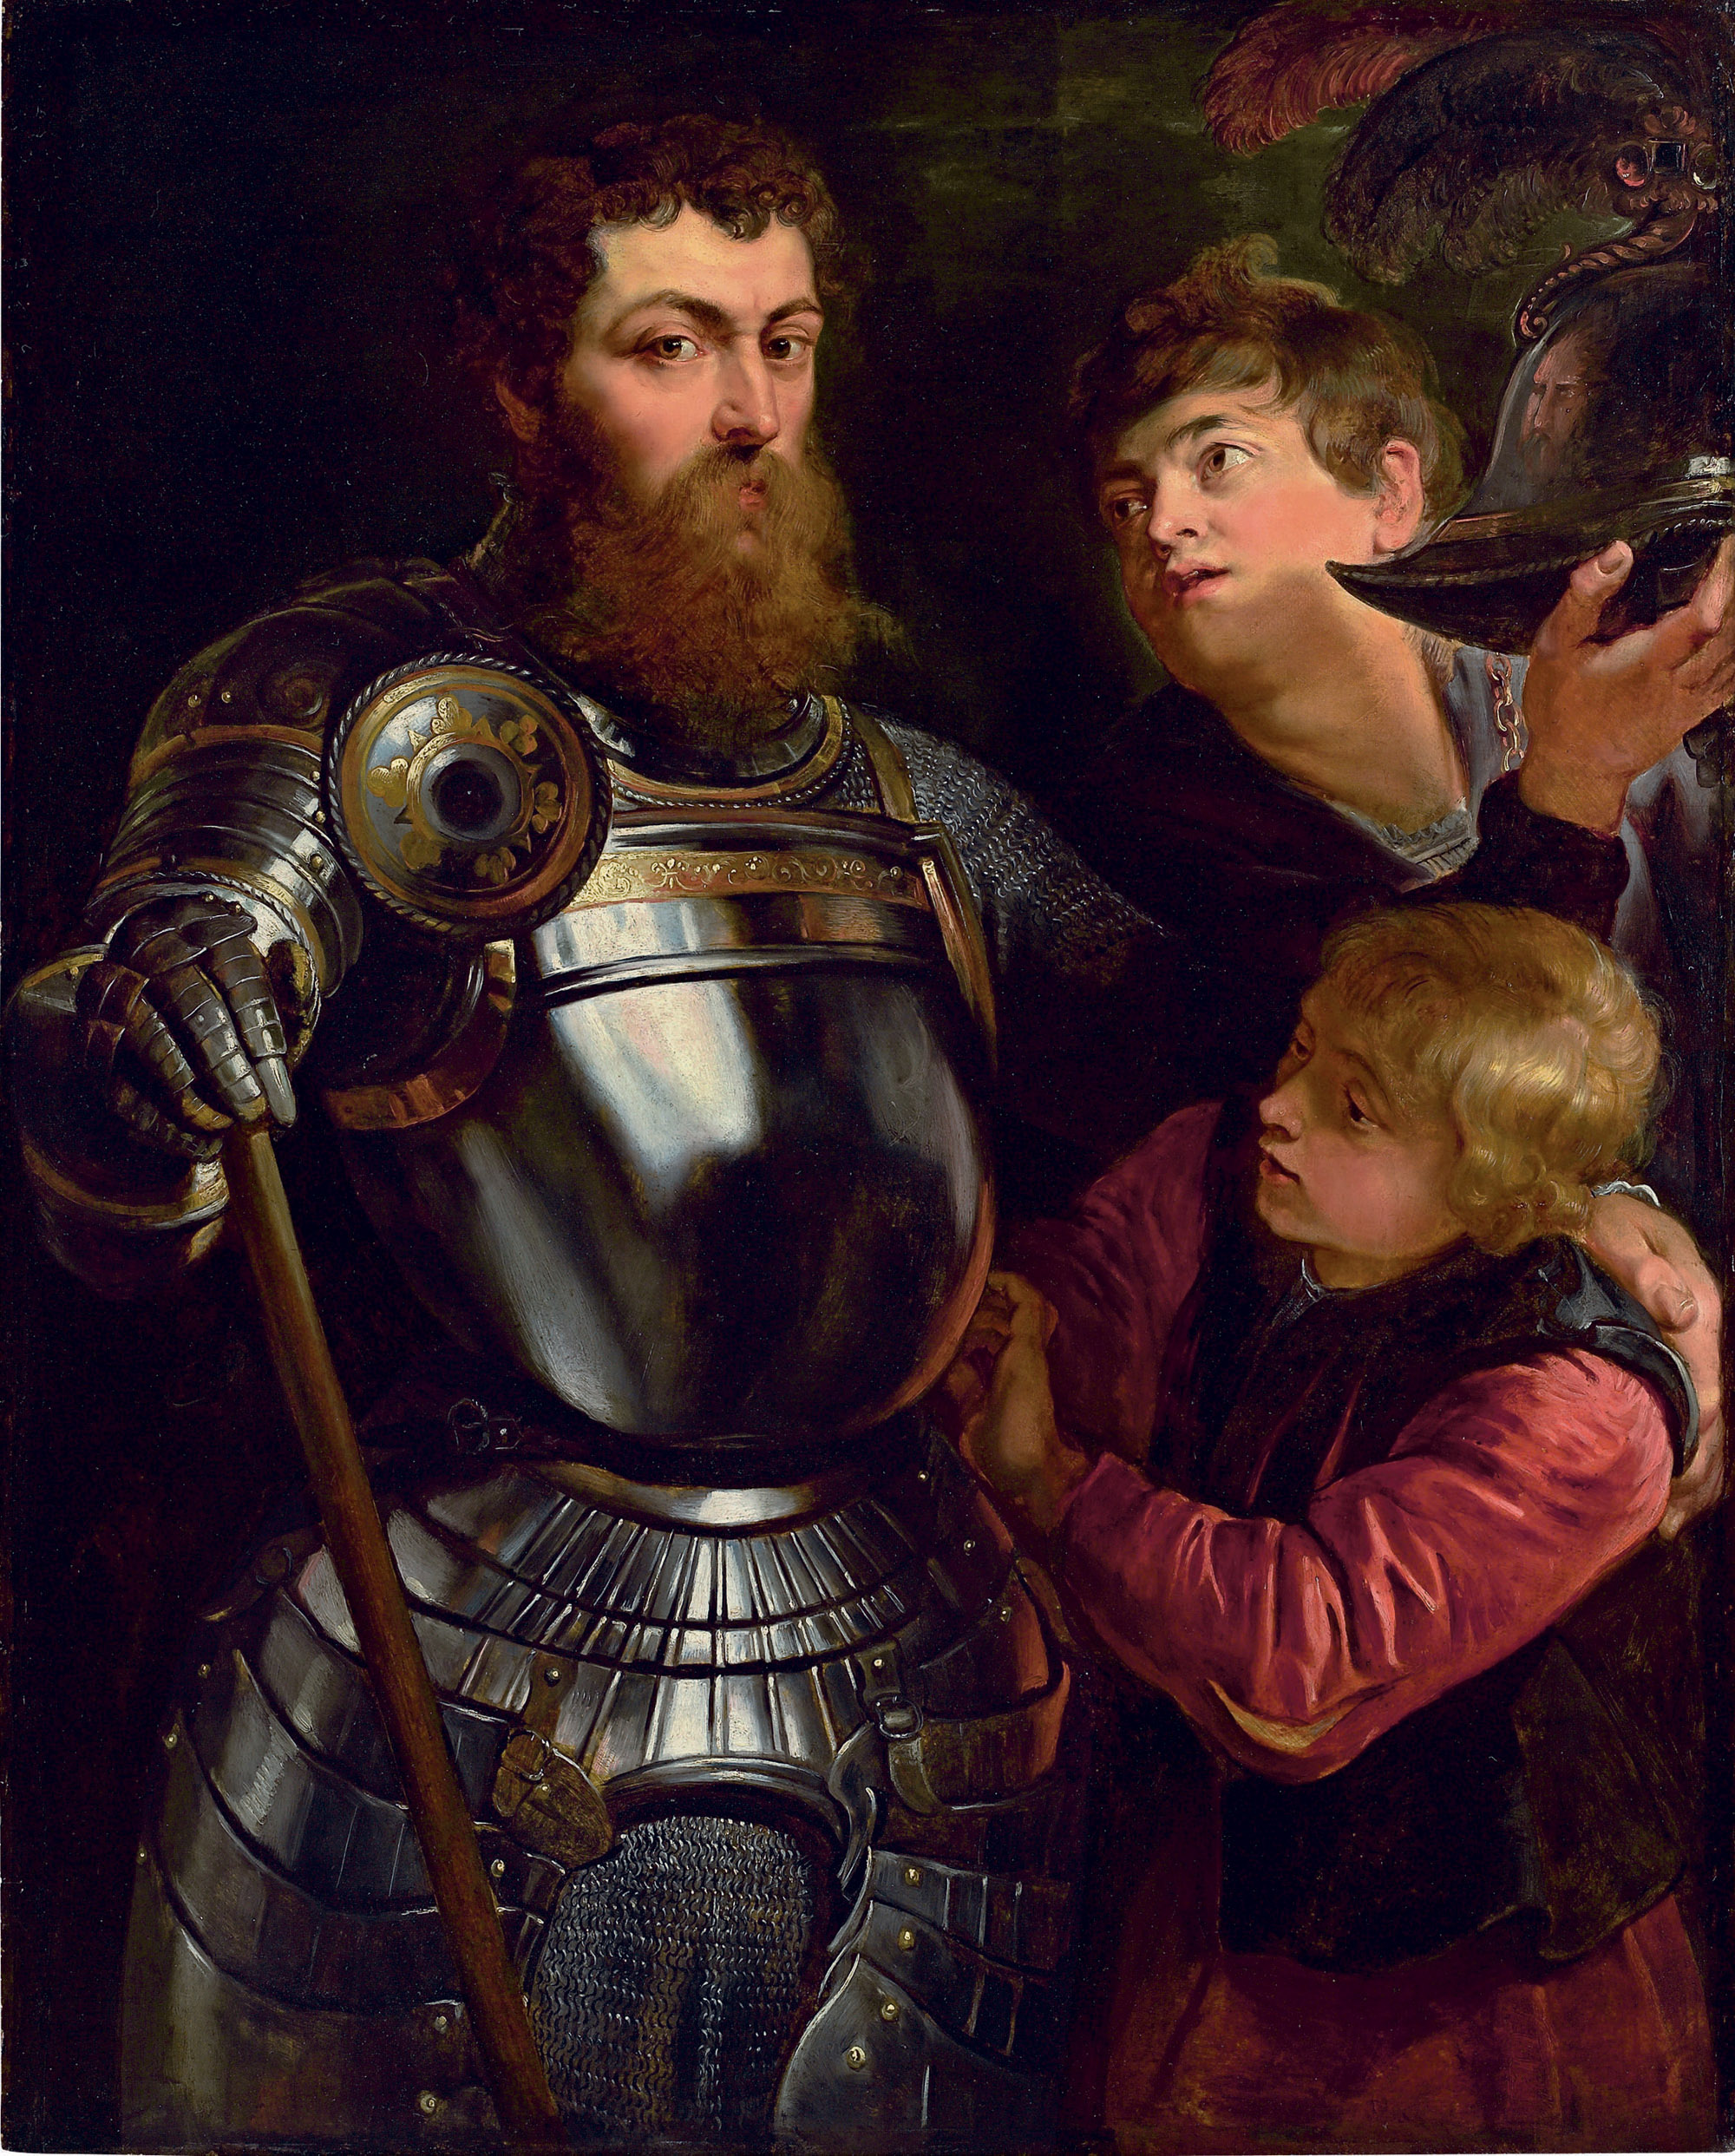 Sir Peter Paul Rubens (Siegen, Westphalia 1577-1640 Antwerp)